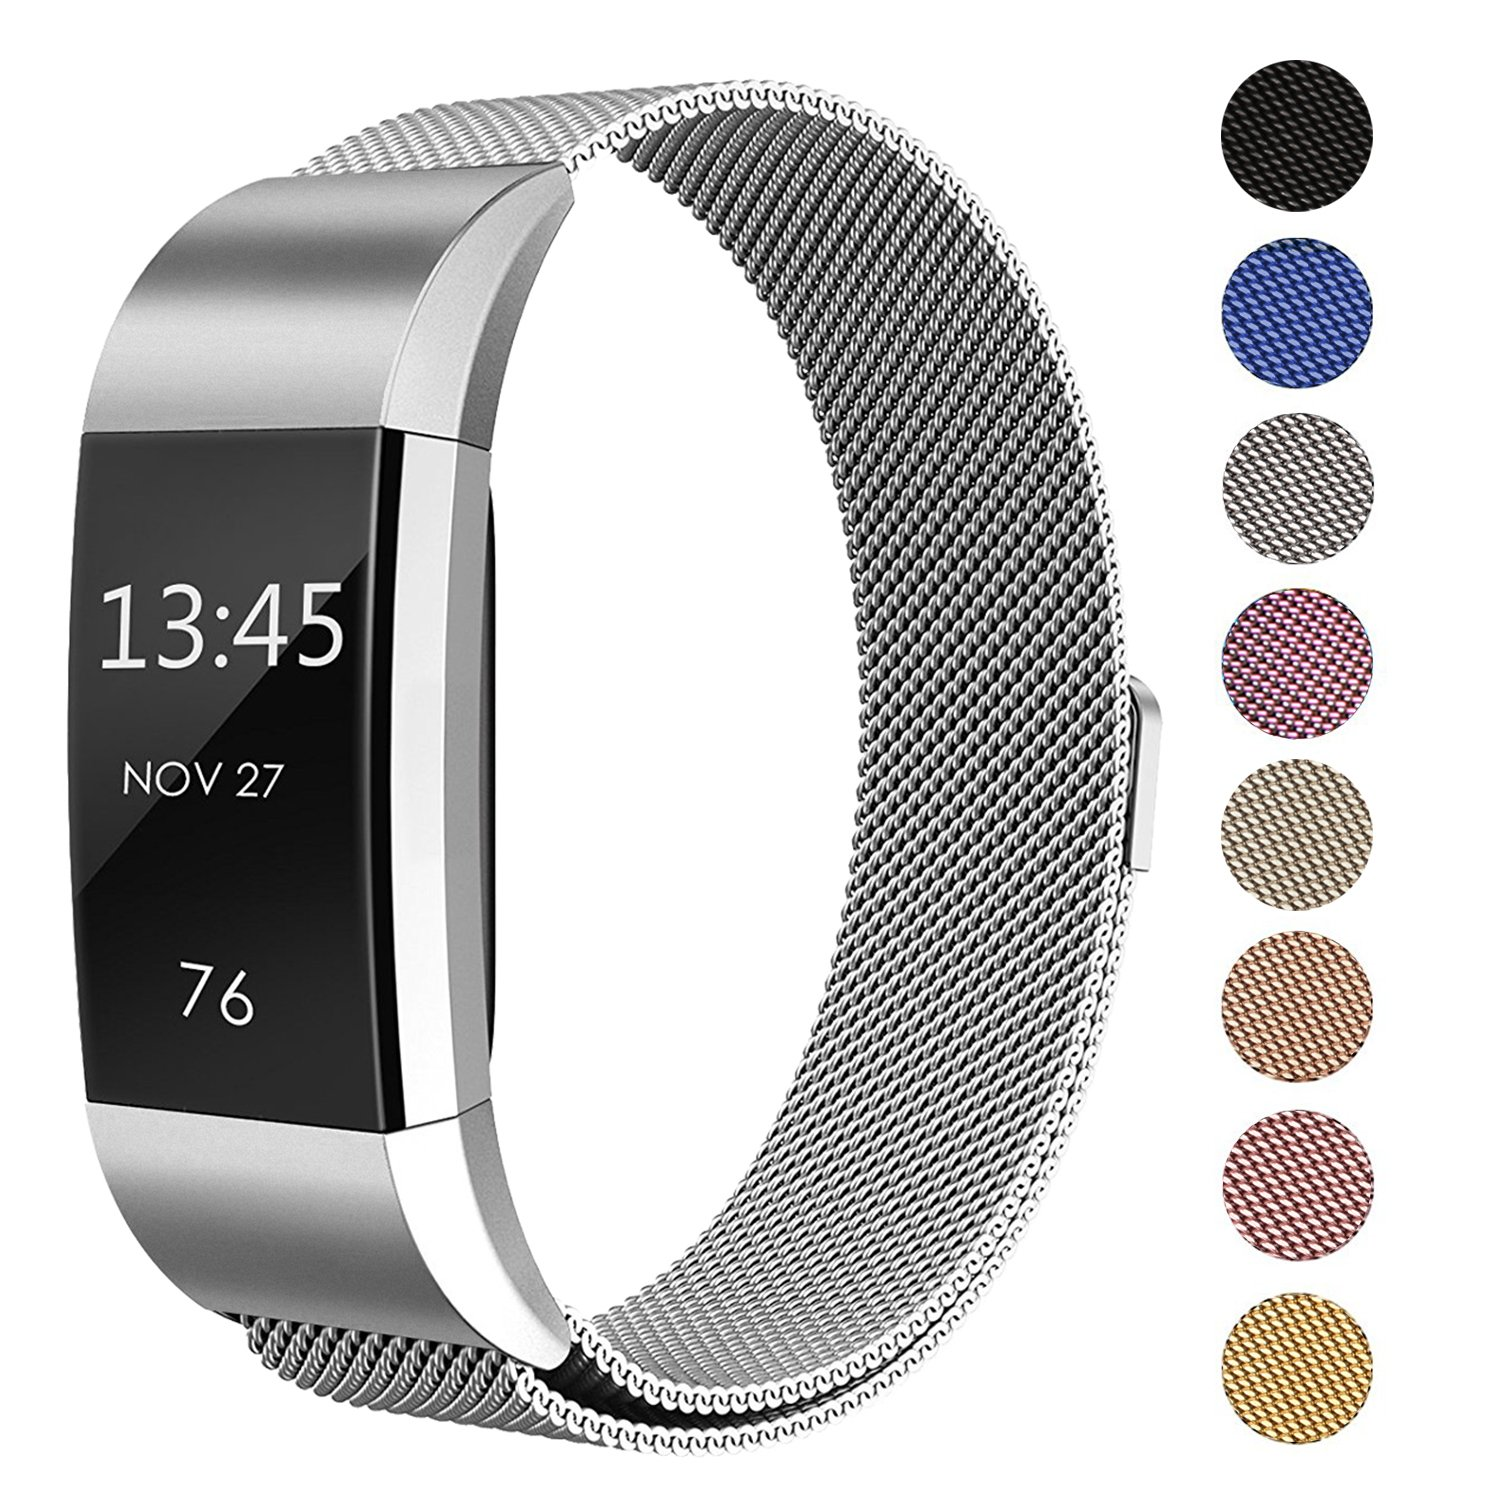 Amazon.com: Fitbit Charge 2 Heart Rate + Fitness Wristband